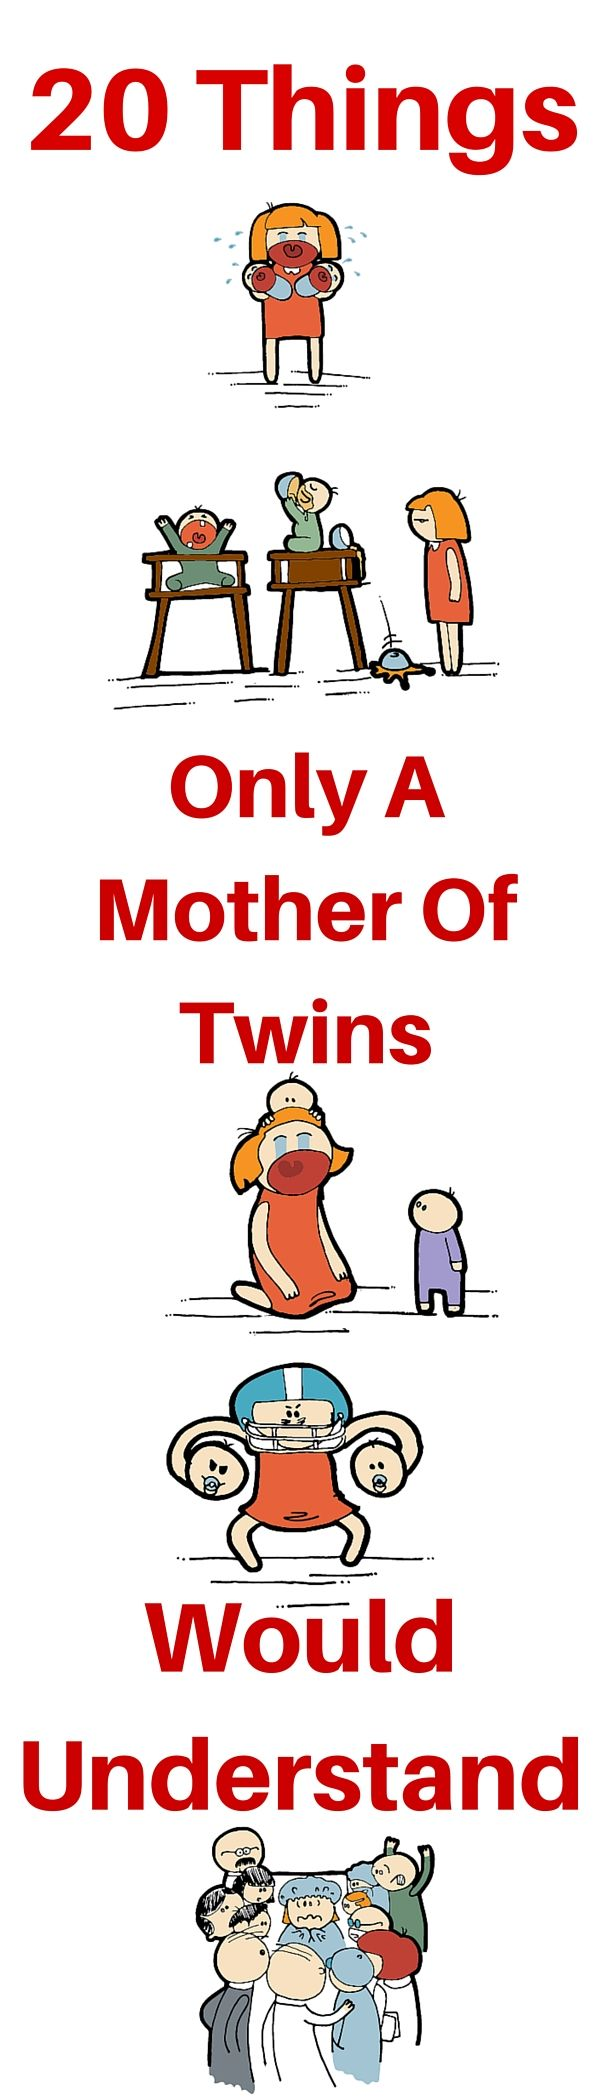 best 25 expecting twins ideas only on pinterest gender reveal